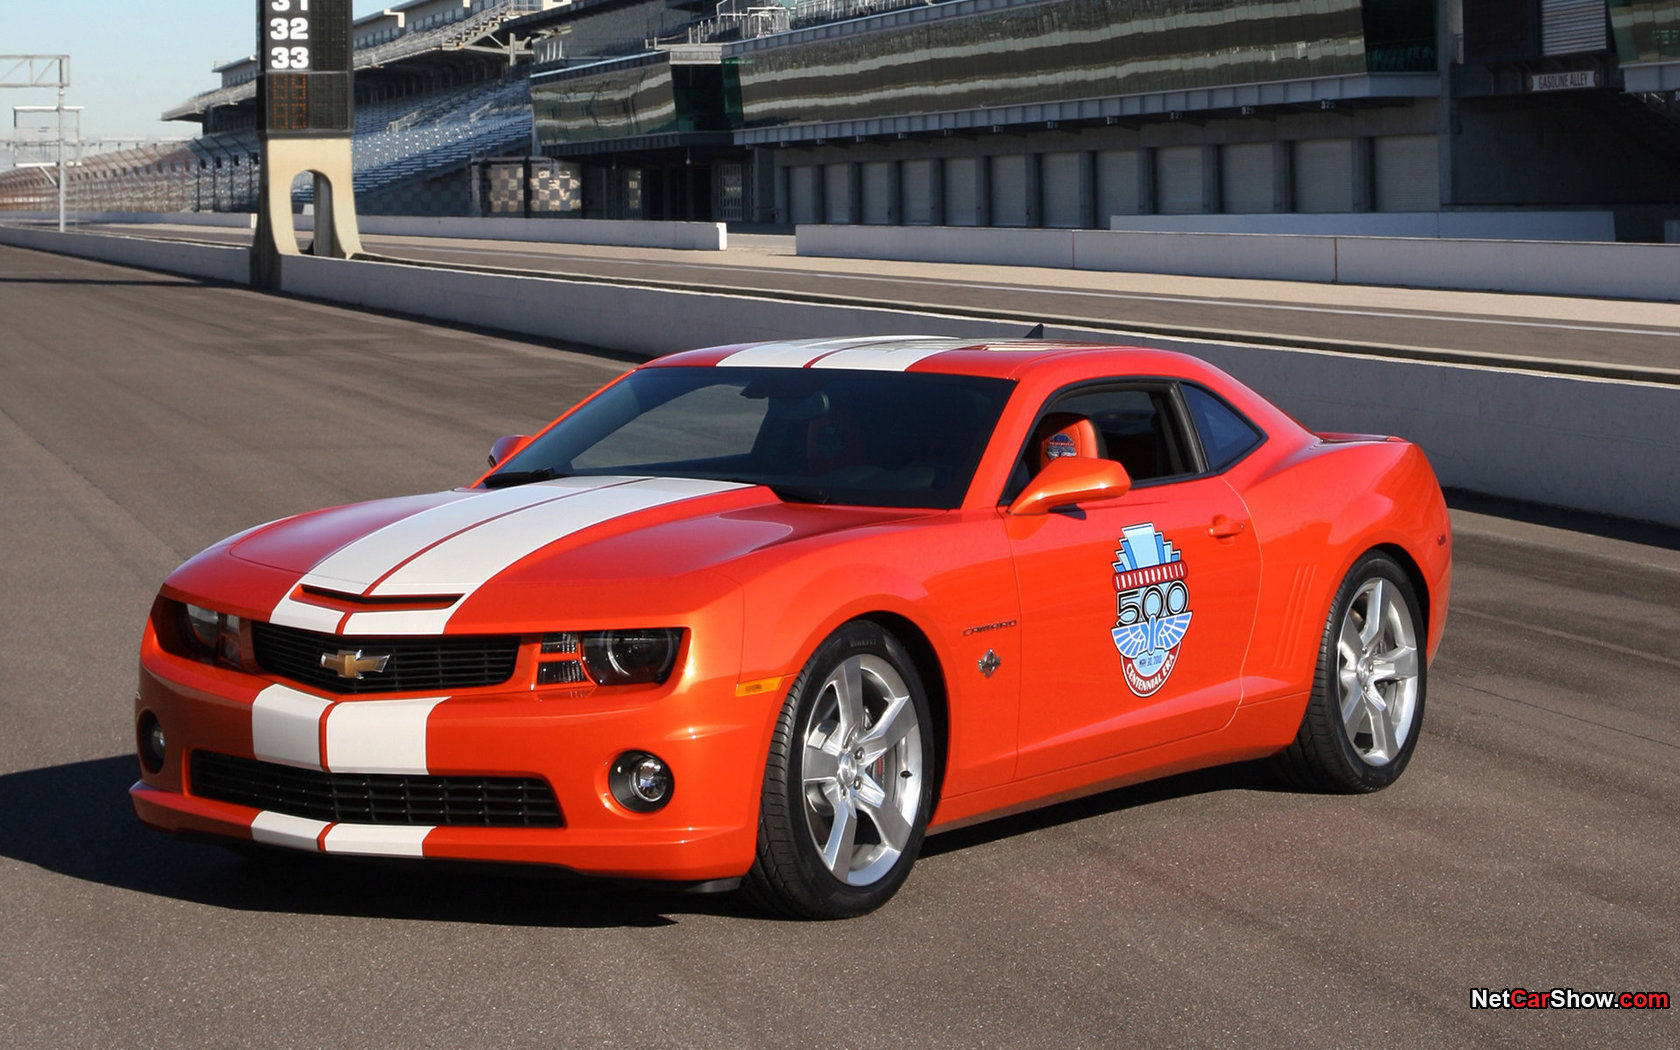 Cool cars wallpaper photos for your desktop 2010 camaro indy 500 pacecar 1680 x 1050 voltagebd Images